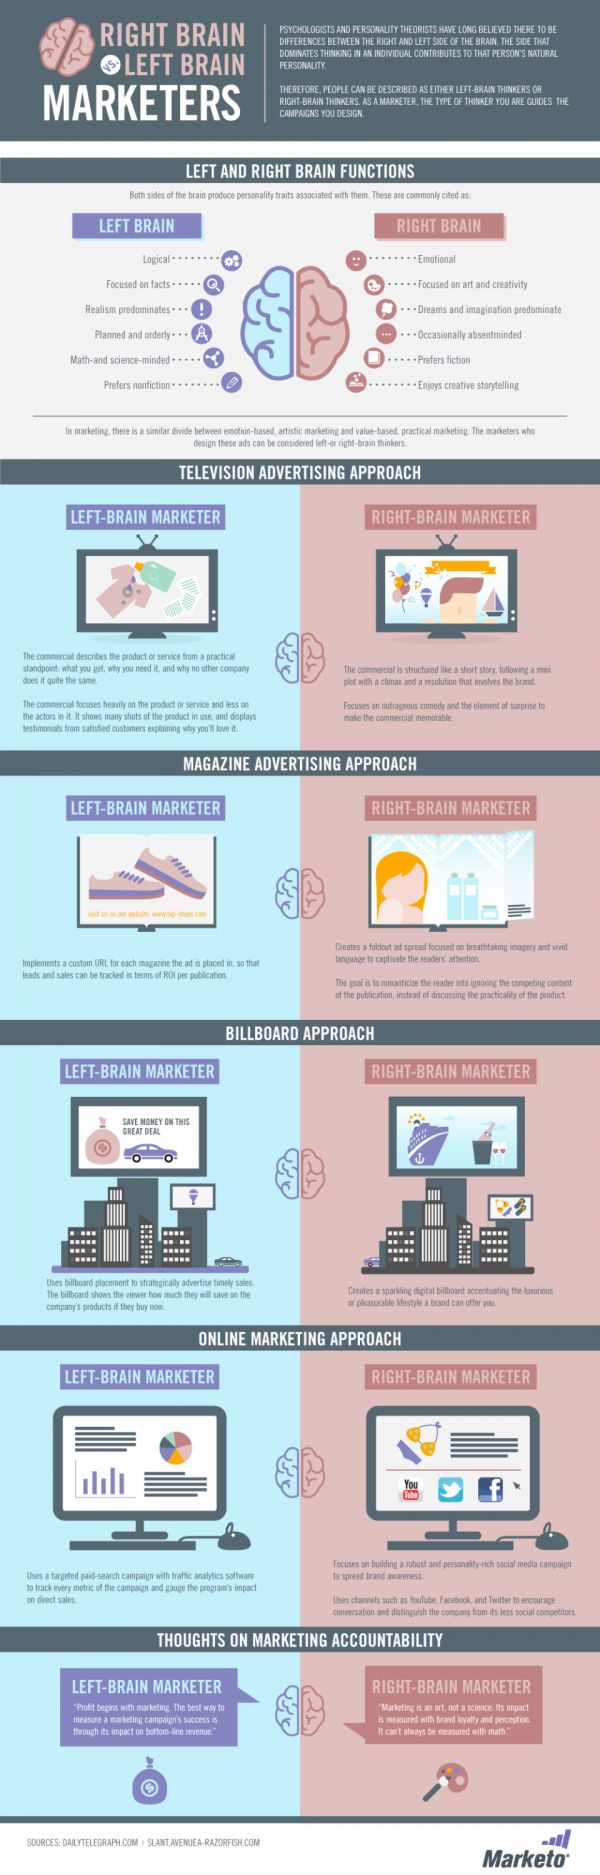 Marketing in south africa Infographic